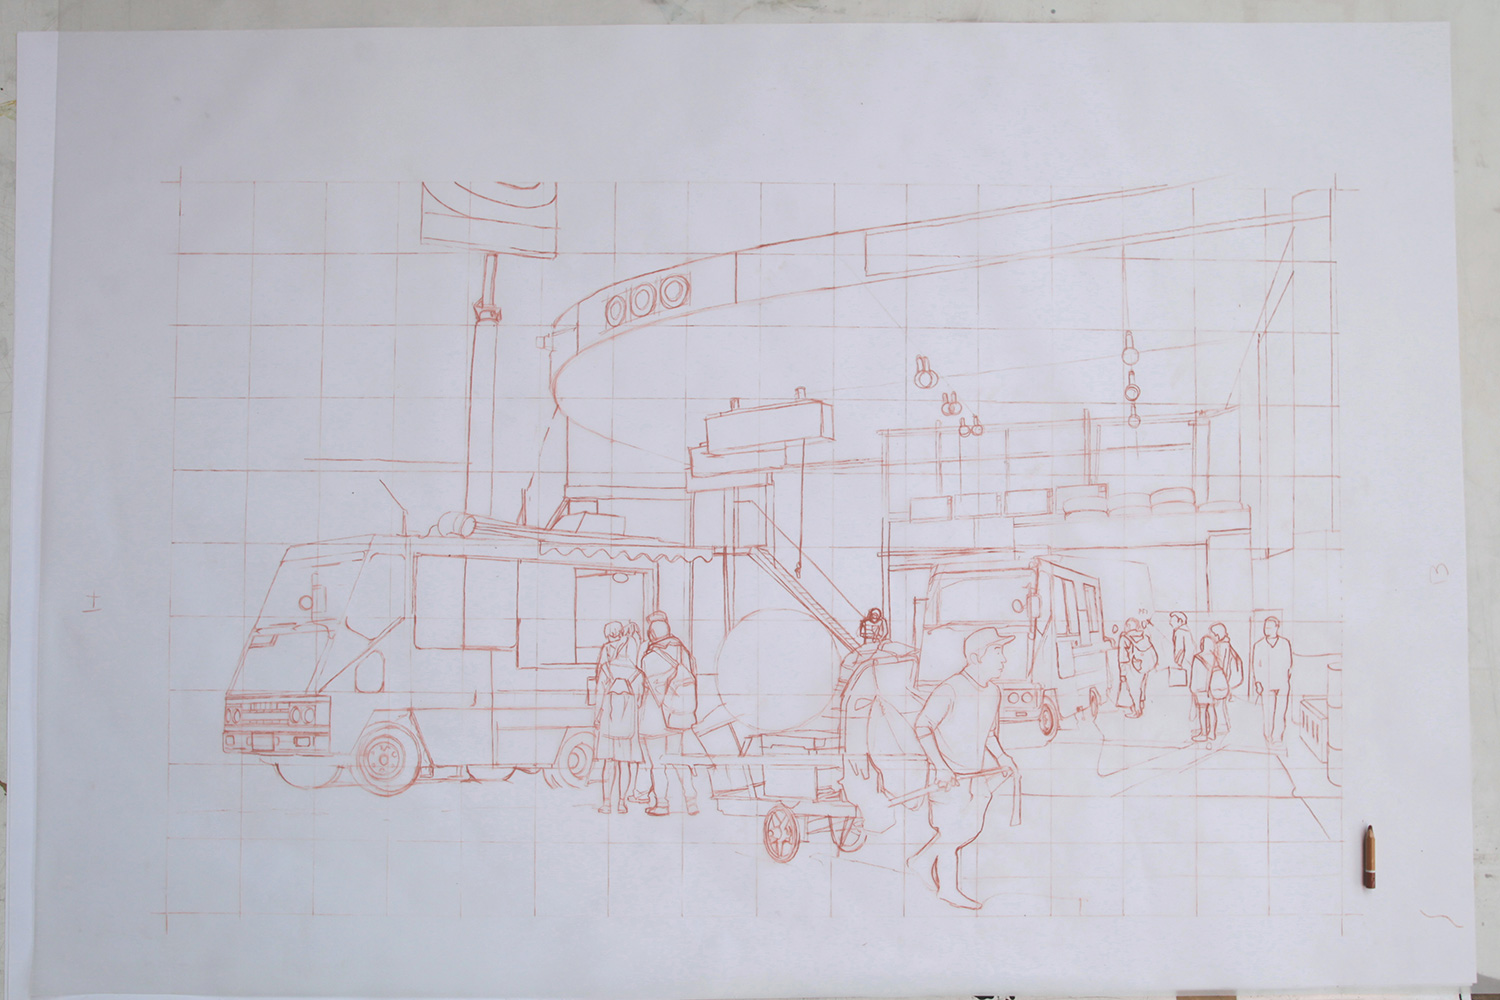 zoer_velvet_street_food_lithographie_CSX_stone_lithograph_urdla_graffiti_process_zoerism_printing_print_fine_art_publisher_craftsmanship_film_soldart_tokyo_japan_edition_royx_nicolas_royol_4